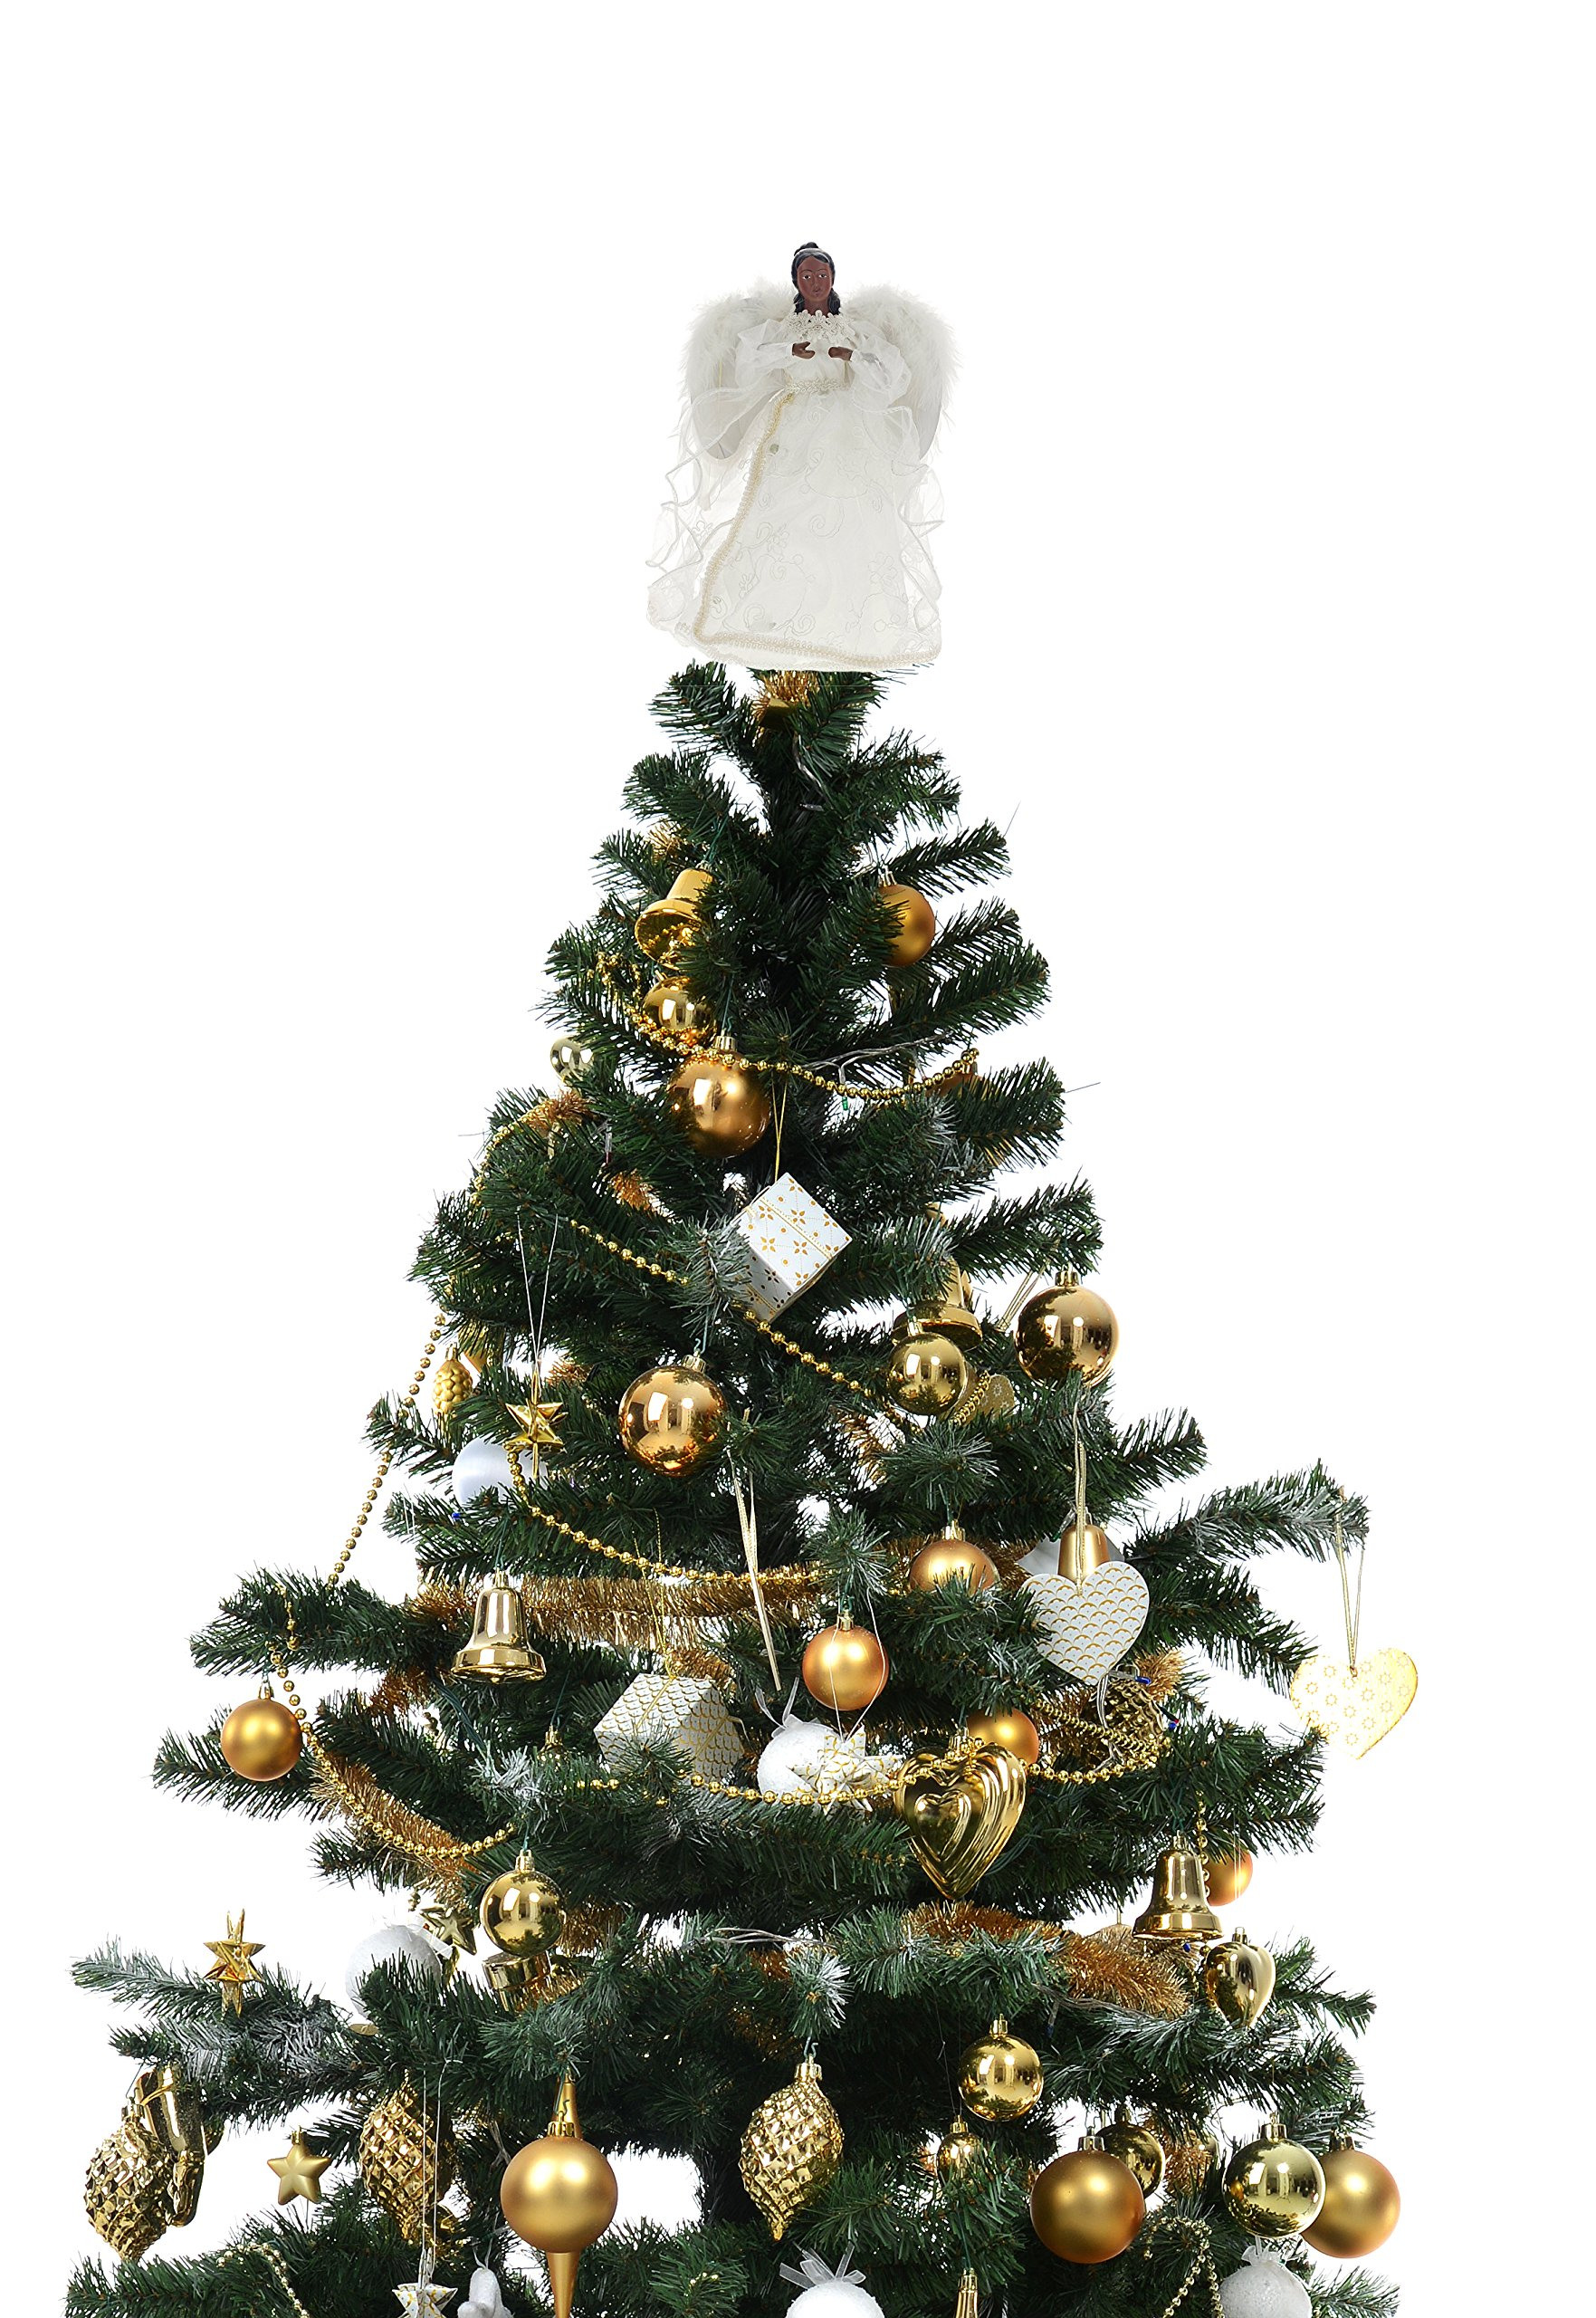 Seasons Designs 12'' White-Robed African American Angel Tree Topper